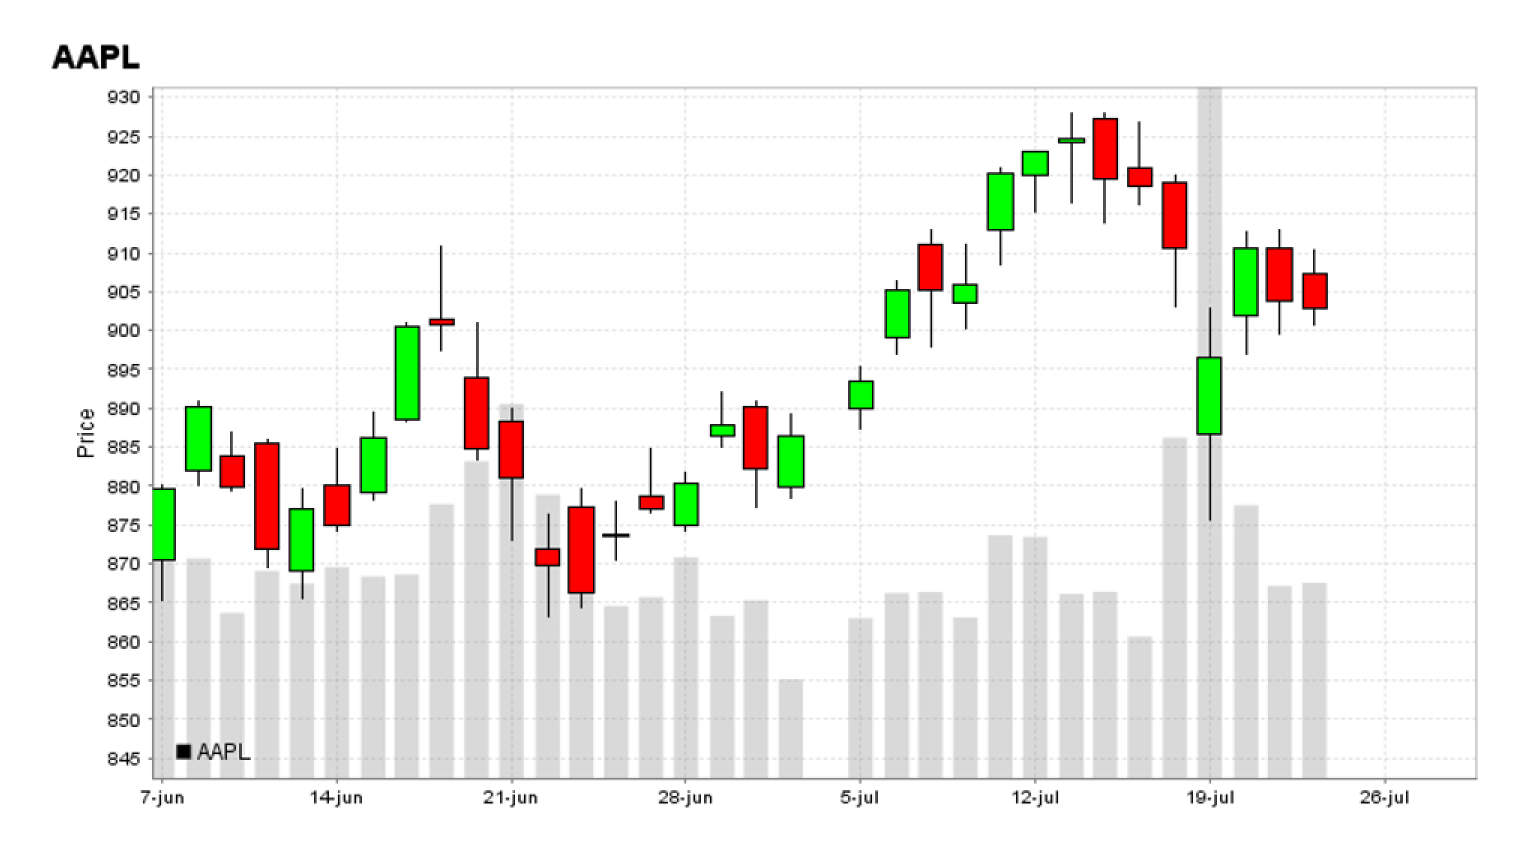 Figure 1: Candlestick chart for AAPL, June-July 2020